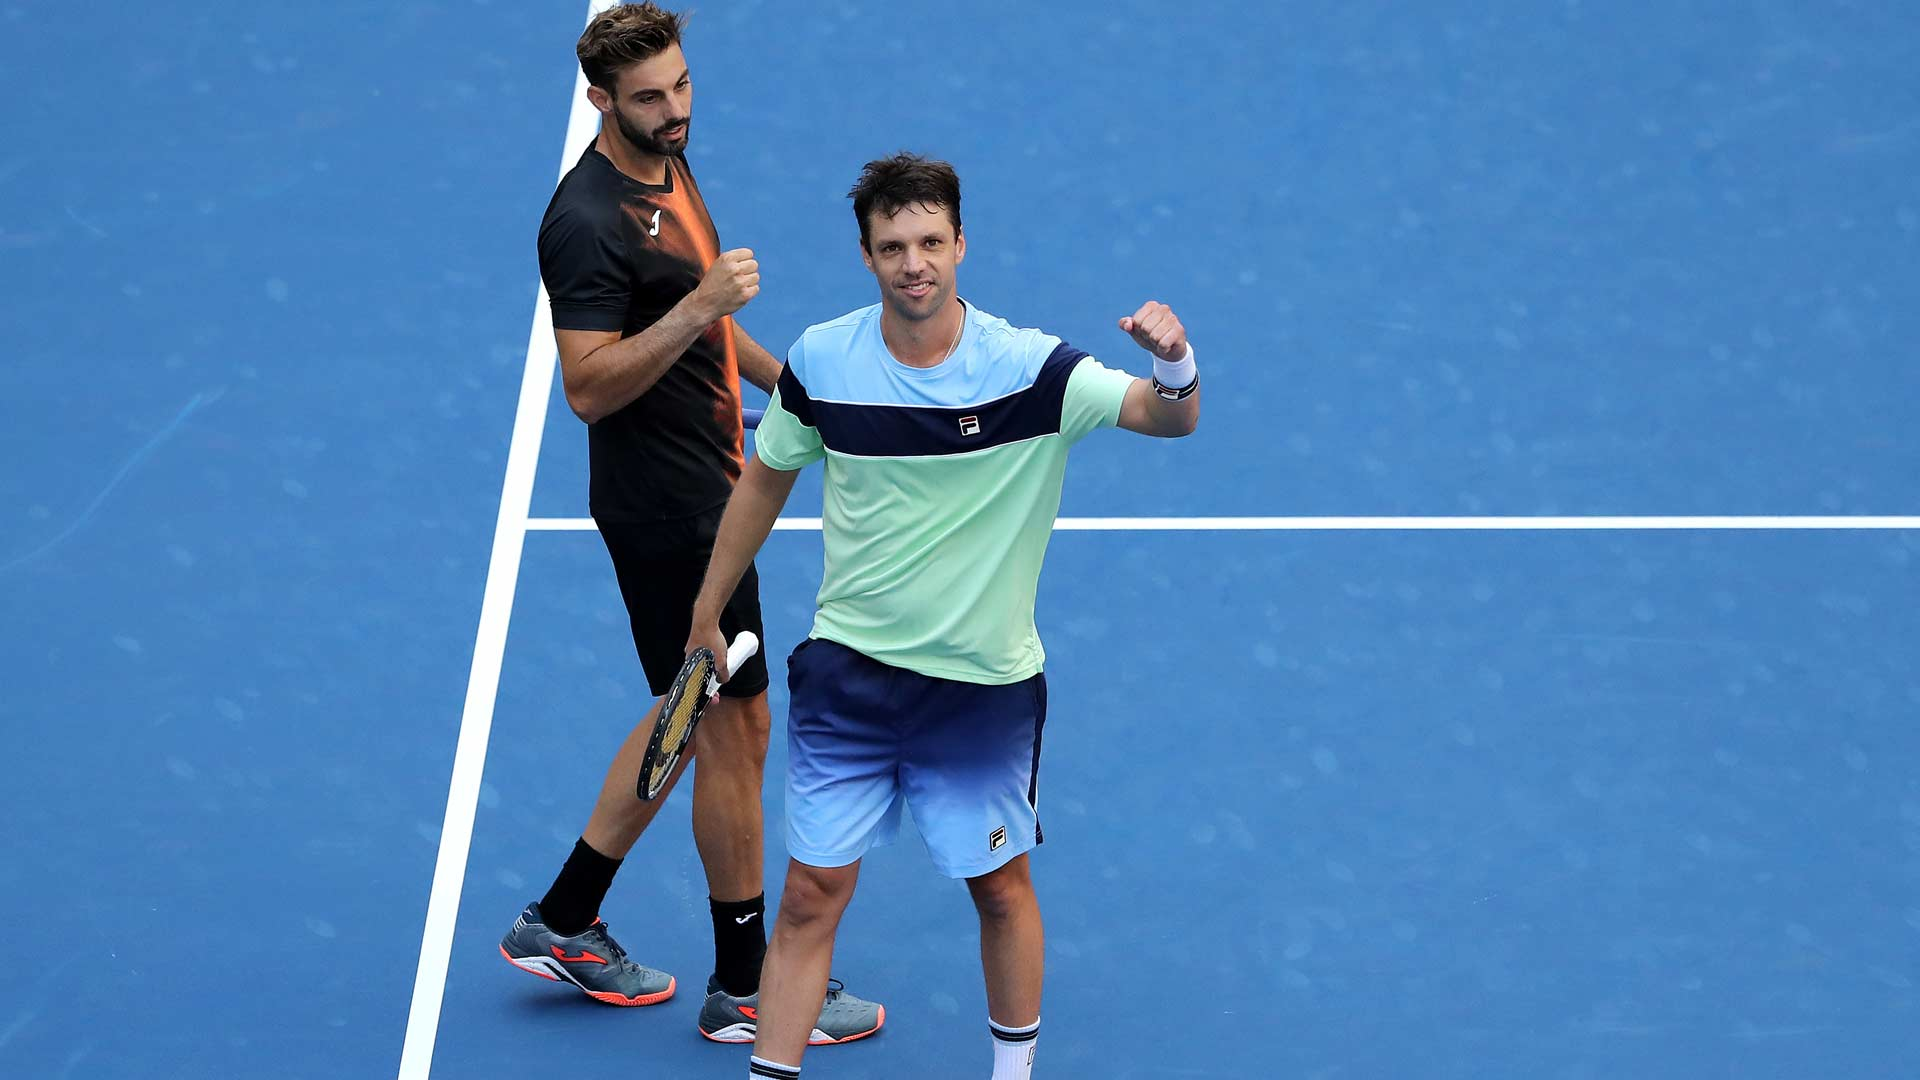 Marcel Granollers and Horacio Zeballos are through to the doubles semi-finals at the US Open.